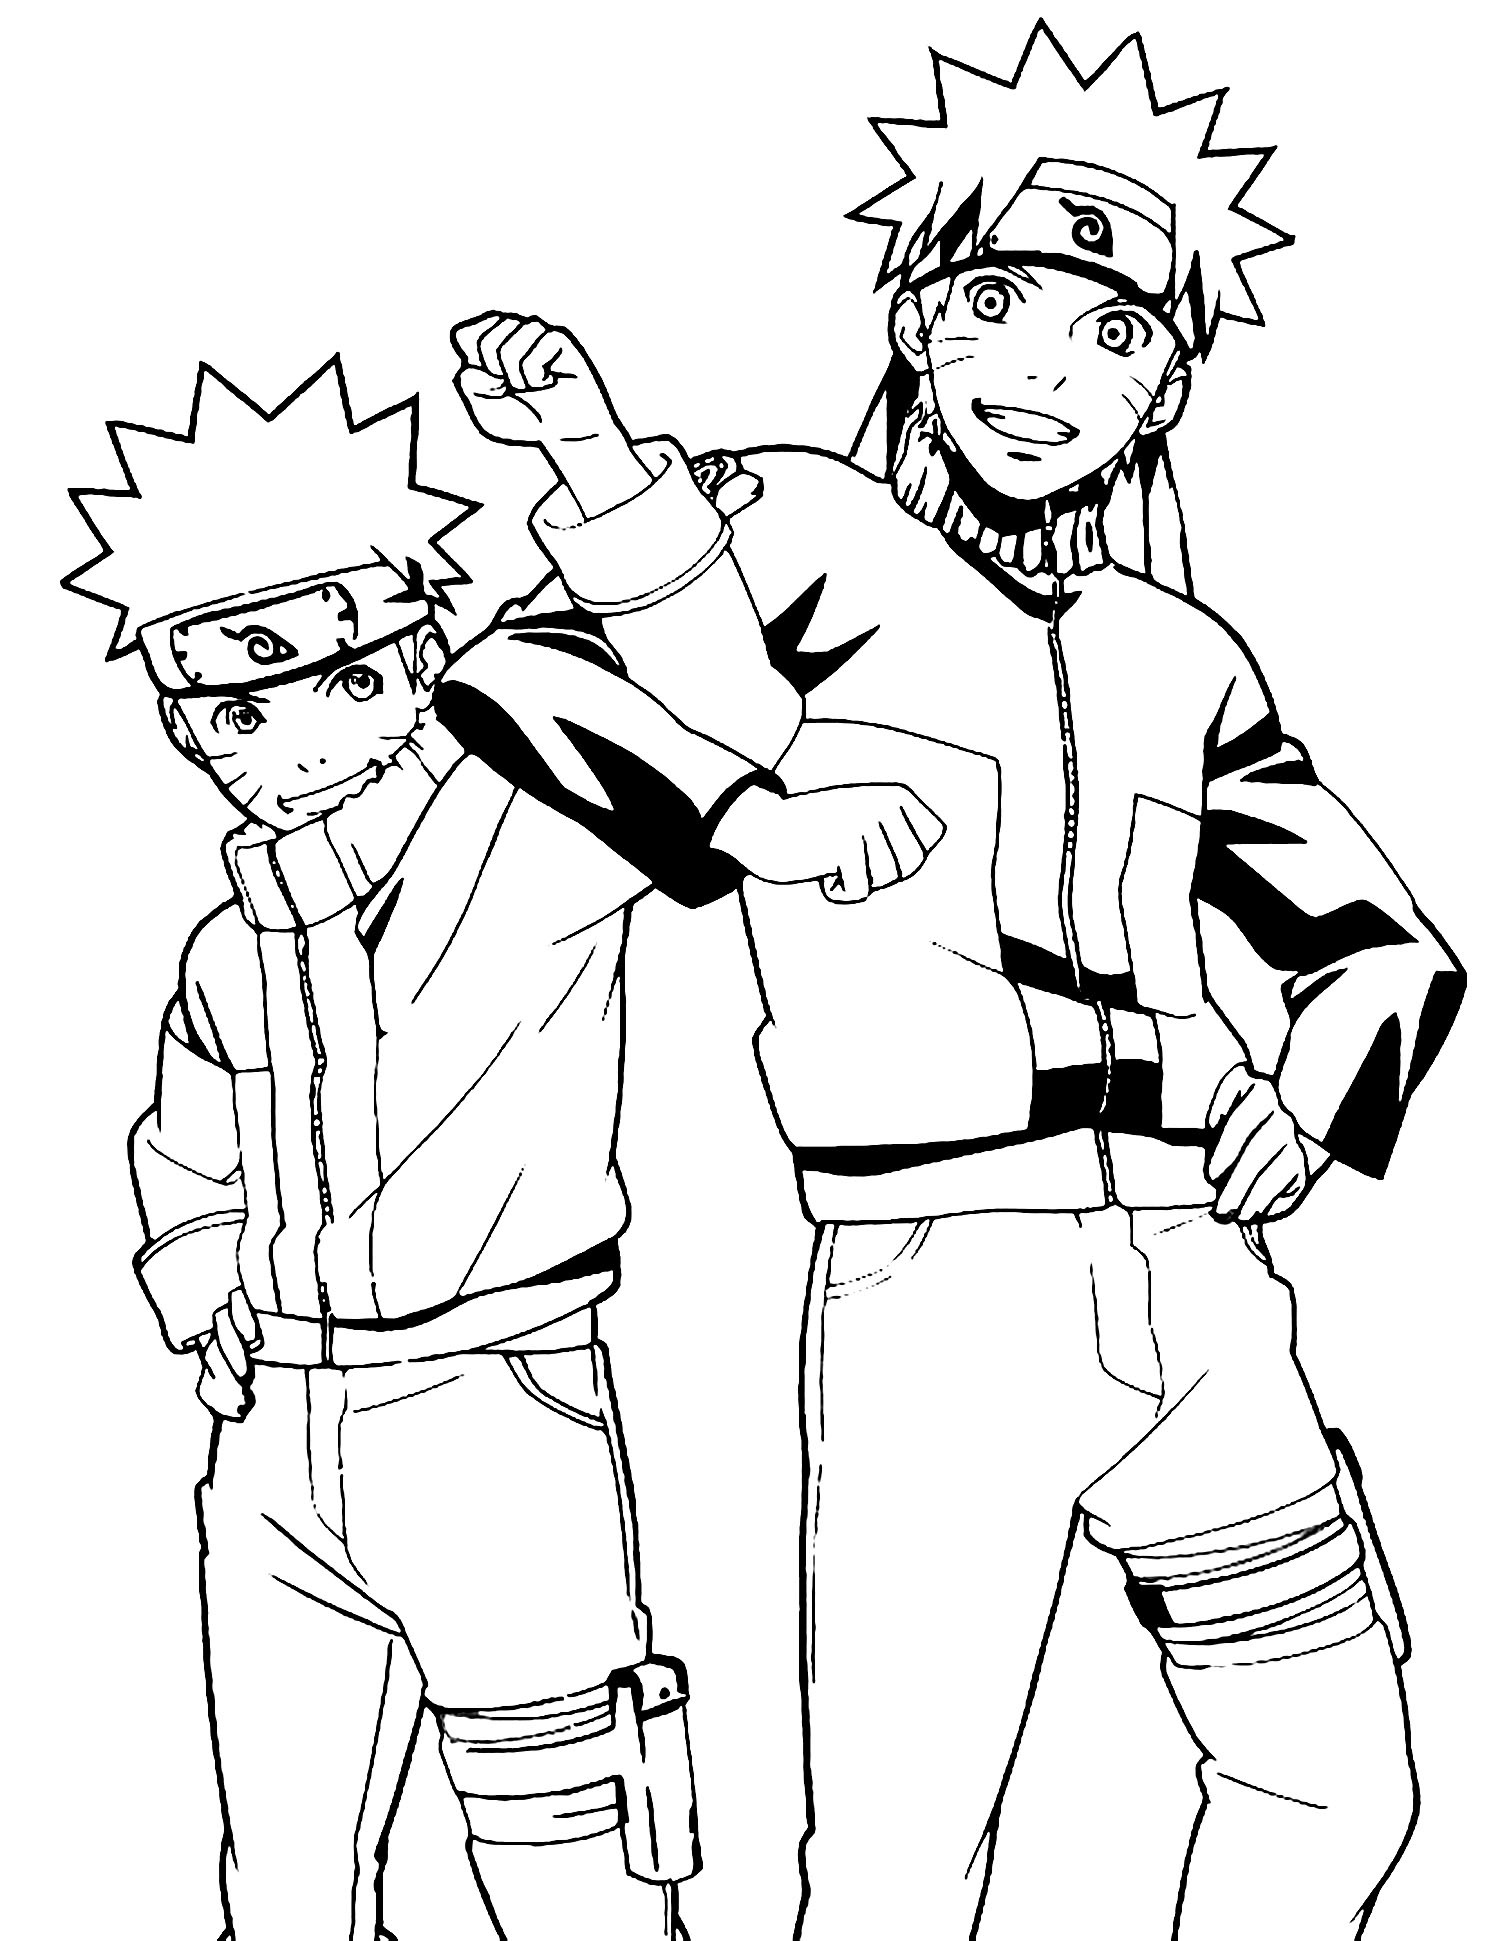 Funny Naruto coloring page for kids